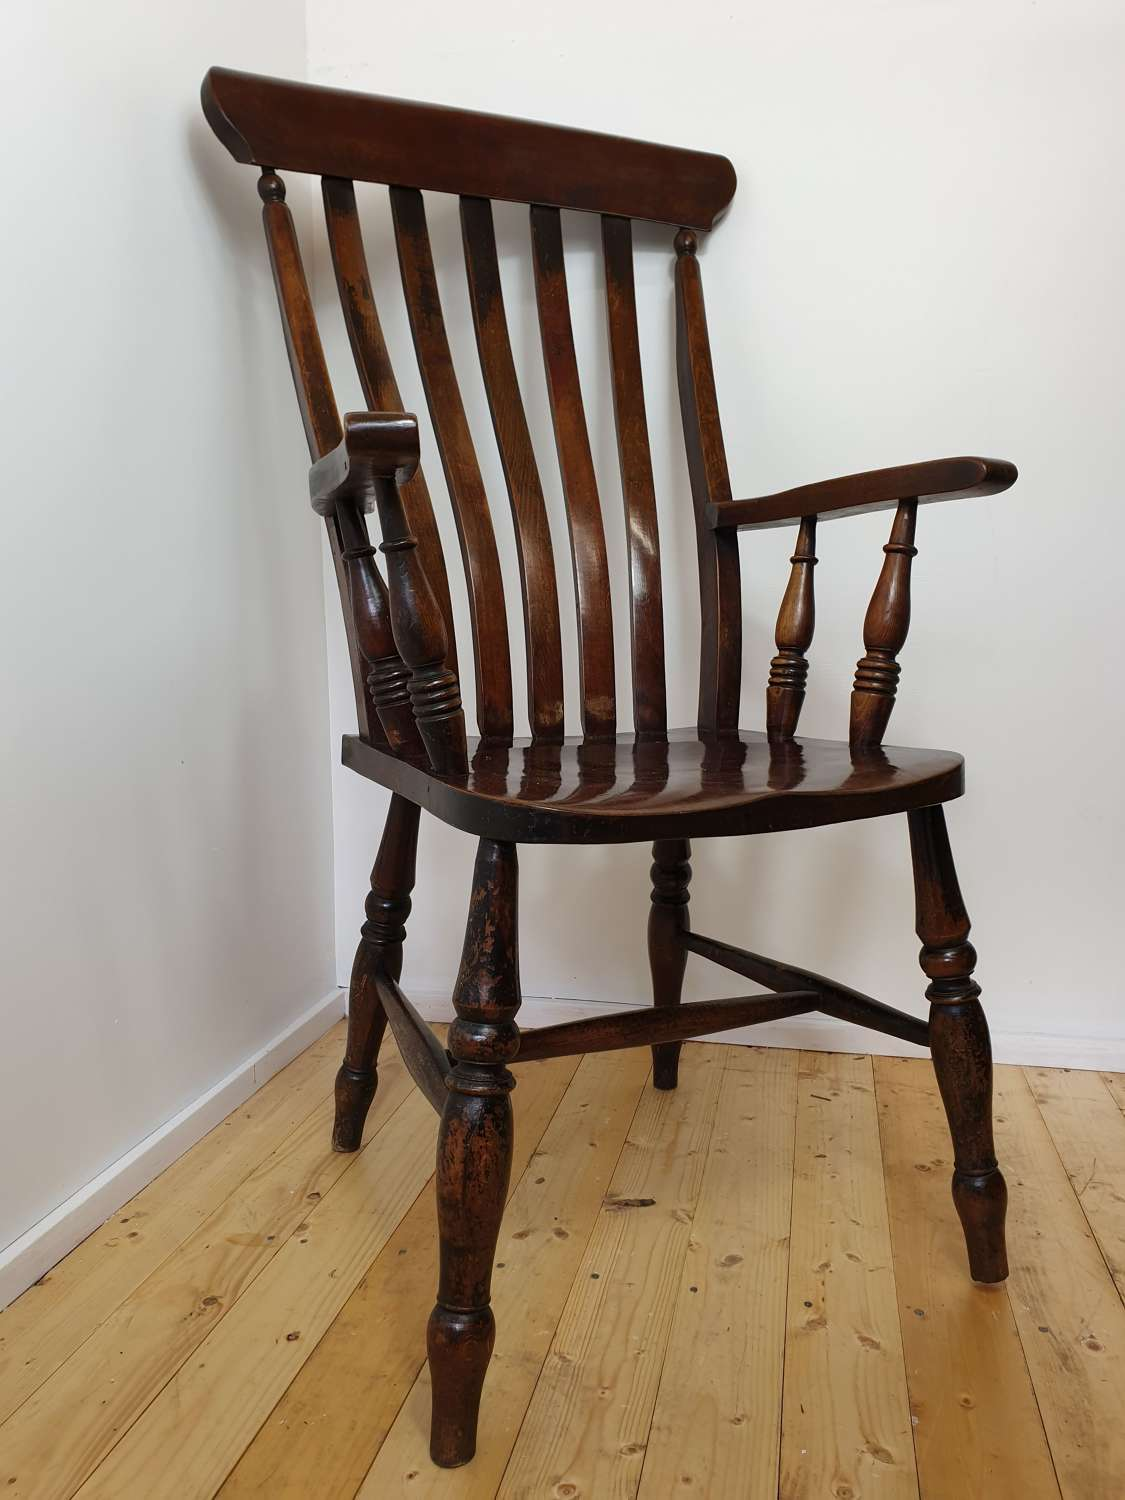 19th Century Windsor Stick Back Chair